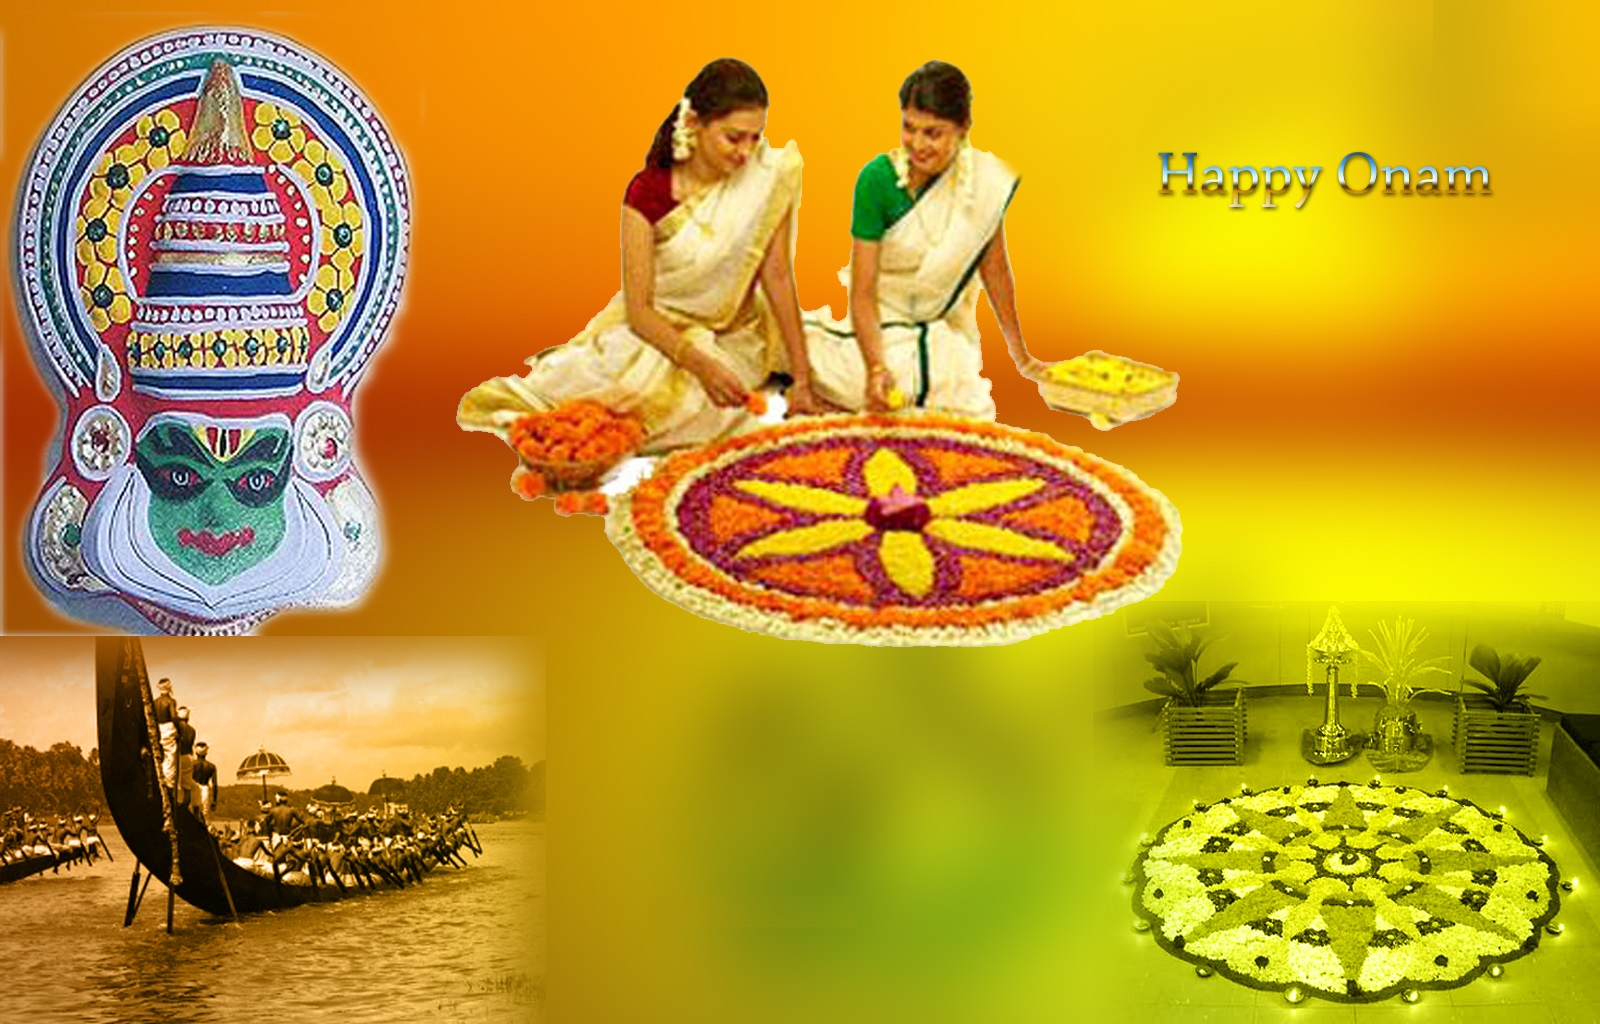 Khushi For Life Top Collection Of Onam Malayalam Wishes 2013